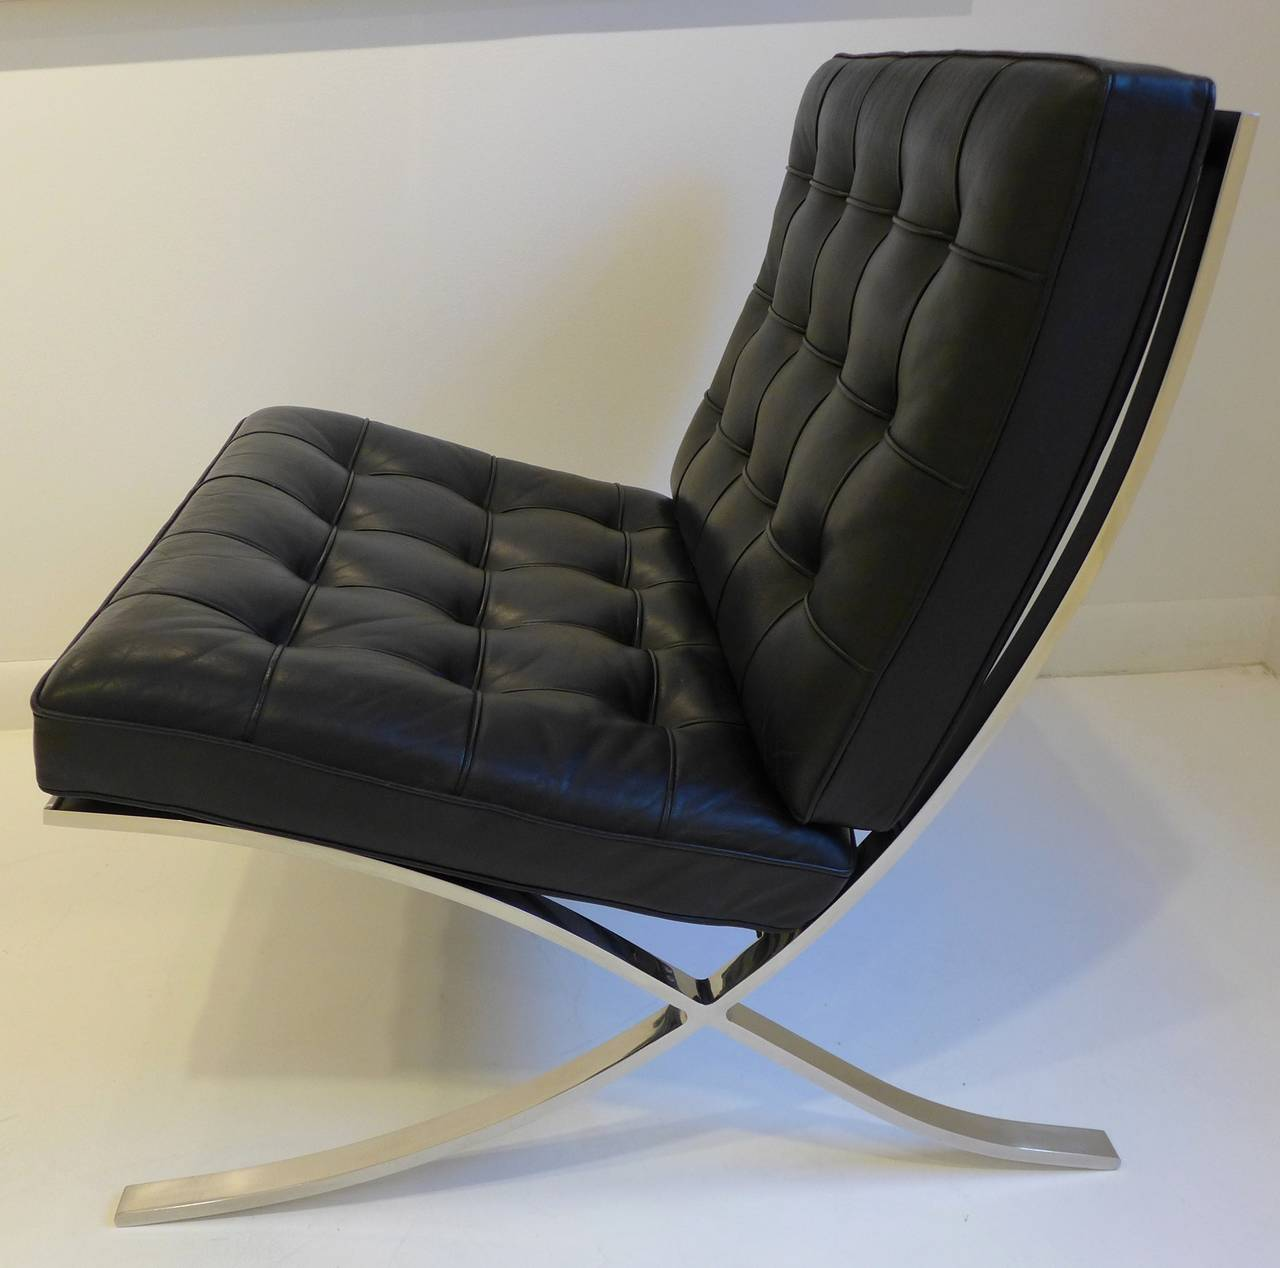 knoll barcelona chair at 1stdibs. Black Bedroom Furniture Sets. Home Design Ideas